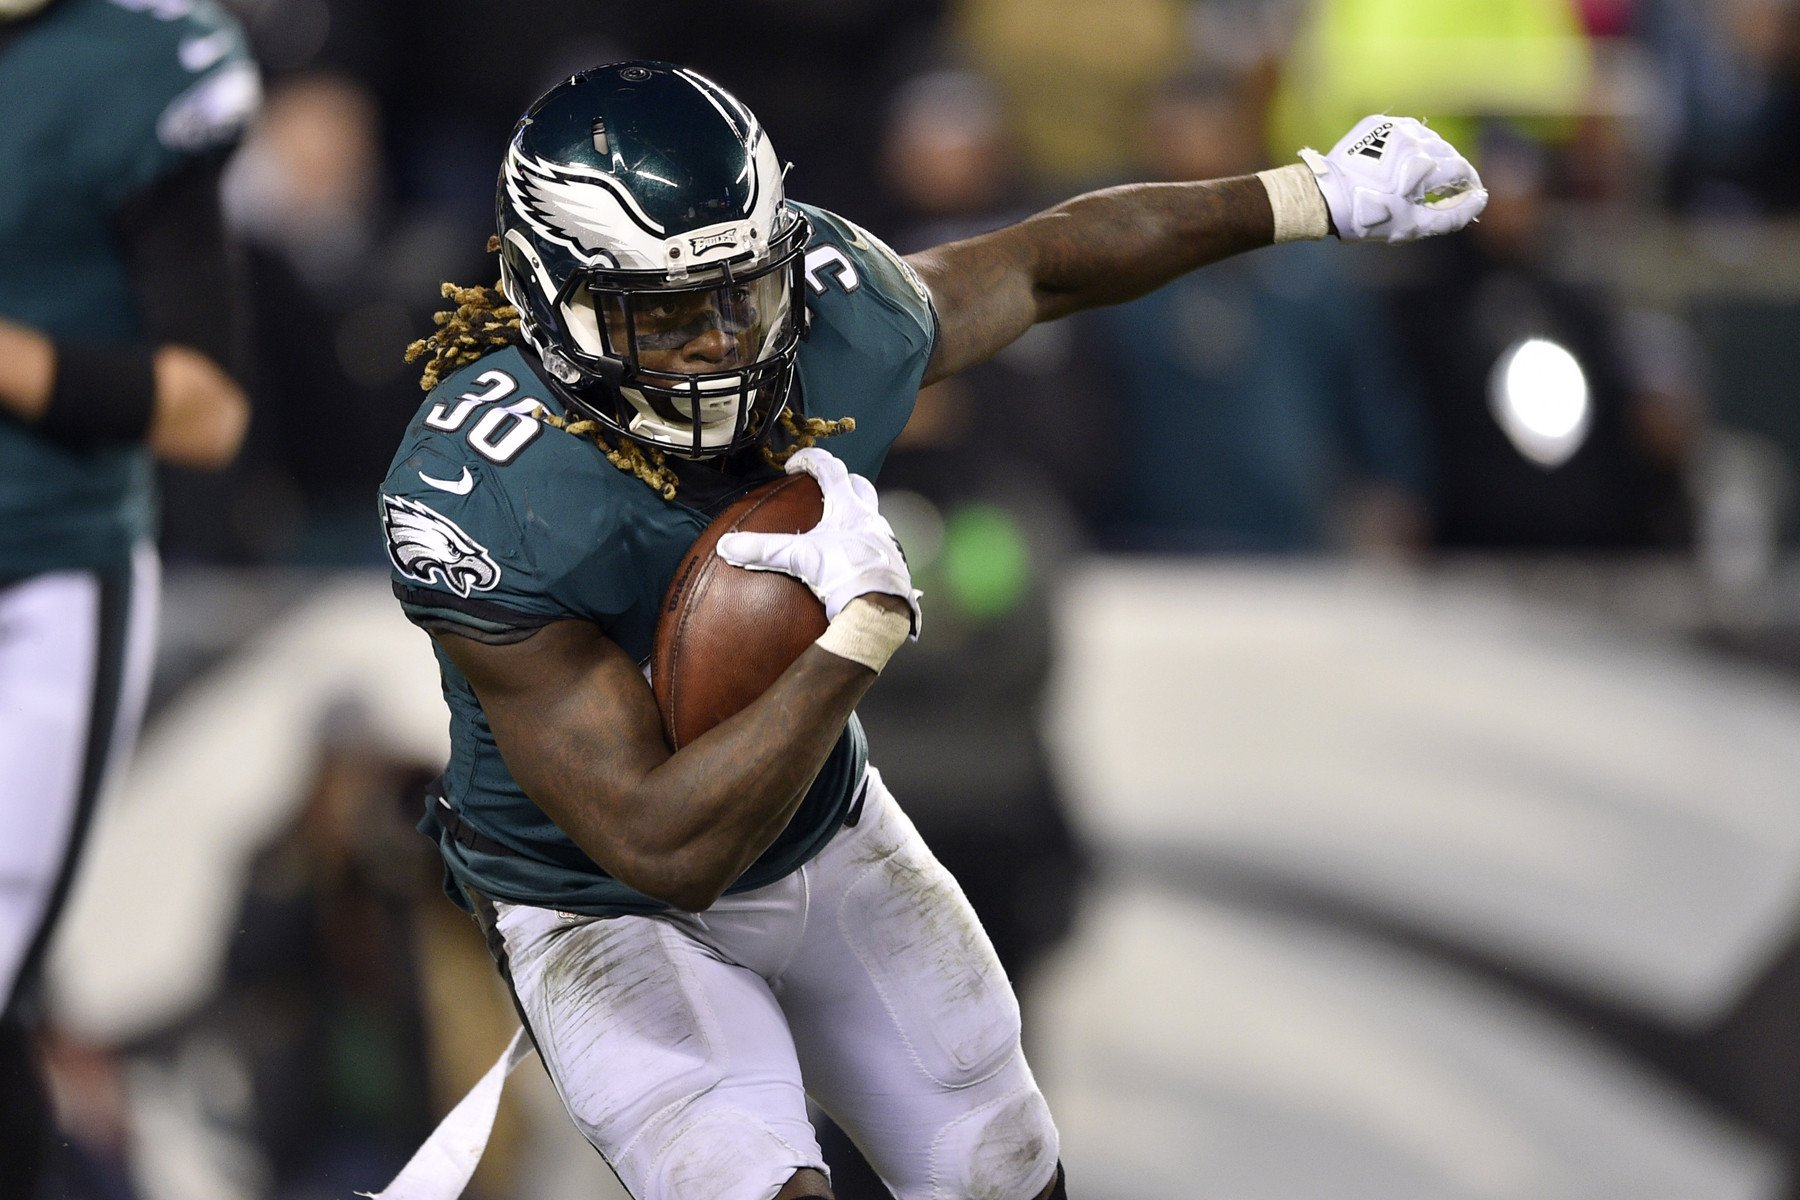 Home underdog Eagles have tools to upend Vikings